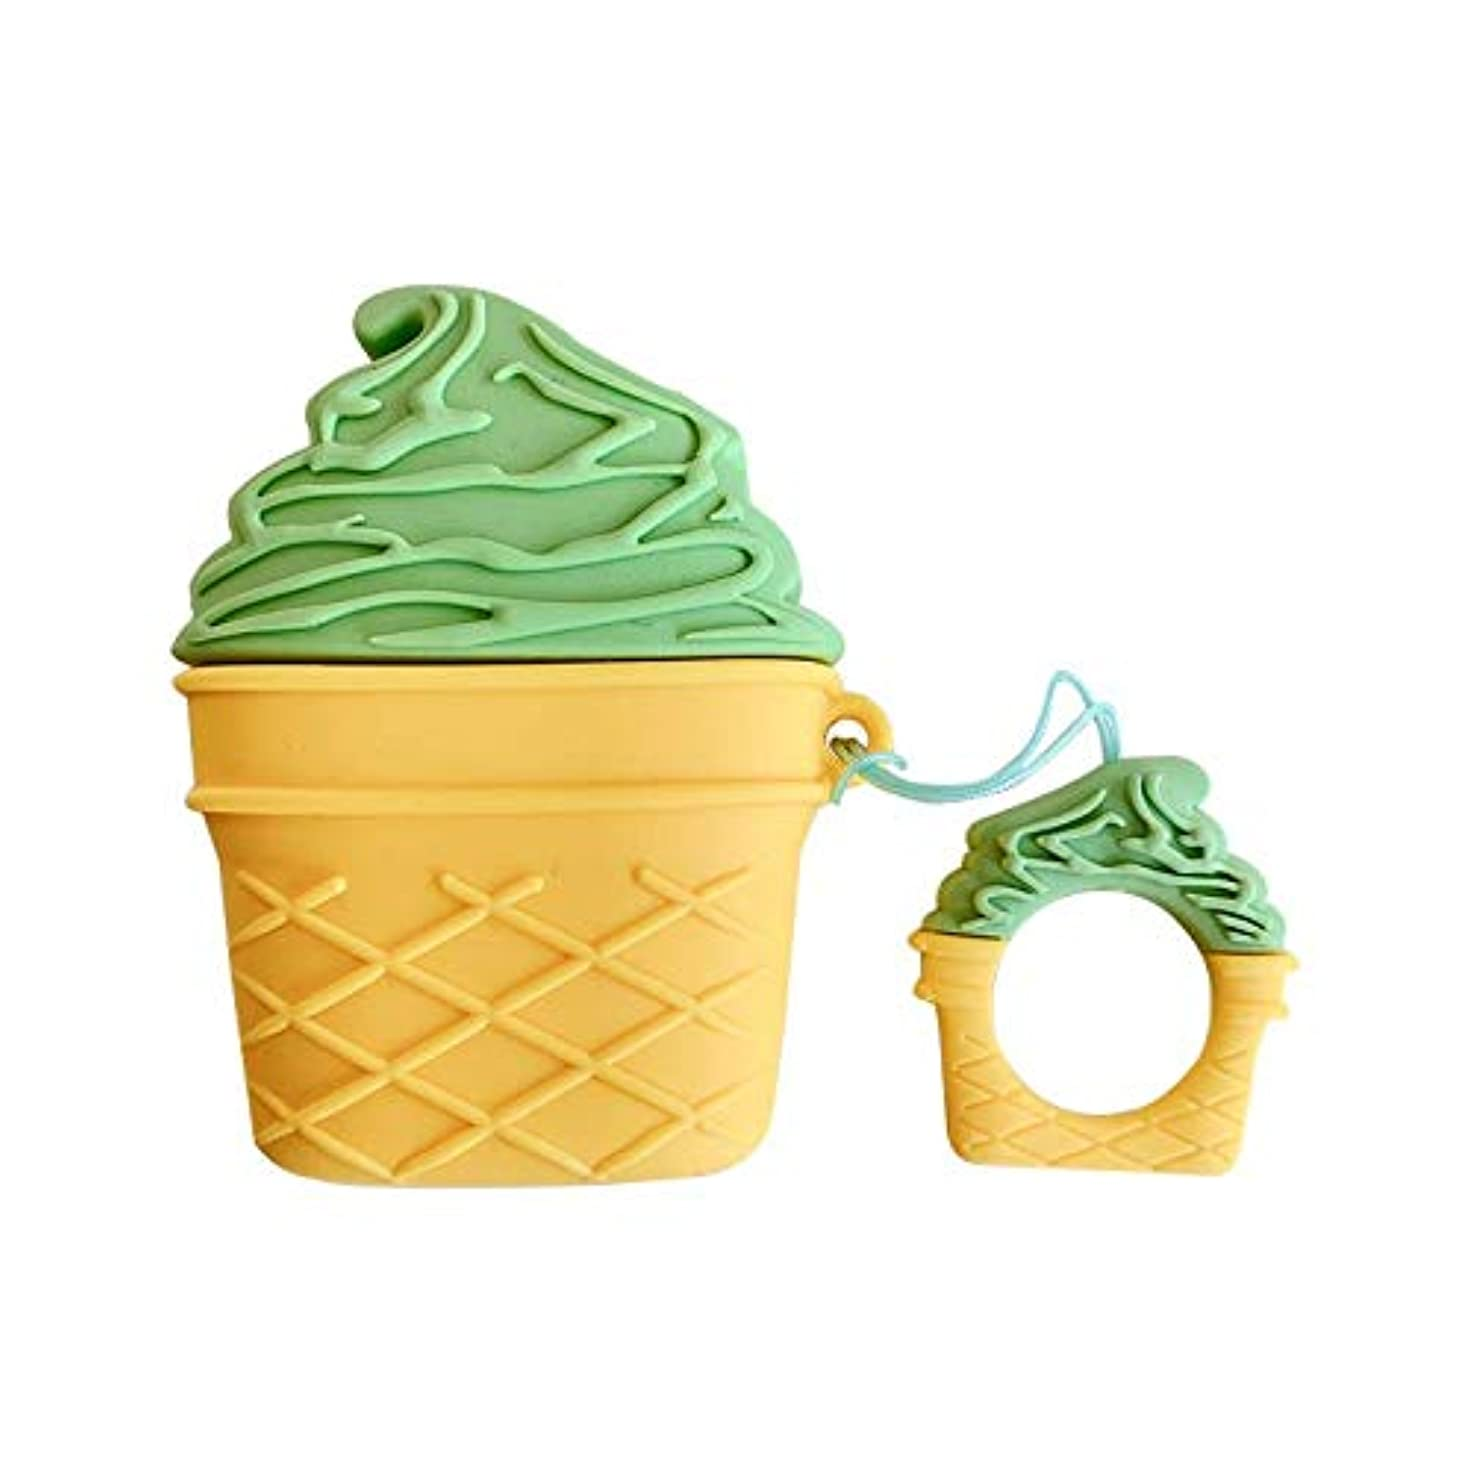 Ultra Thick Soft Silicone 3D Matcha Ice-Cream Cone Case for Apple Airpods 1 2 Charging Case Finger Loop Protective Mini Bag Protector Shockproof Summer Fresh Creative Cute Lovely Gift Girls Boys Kids